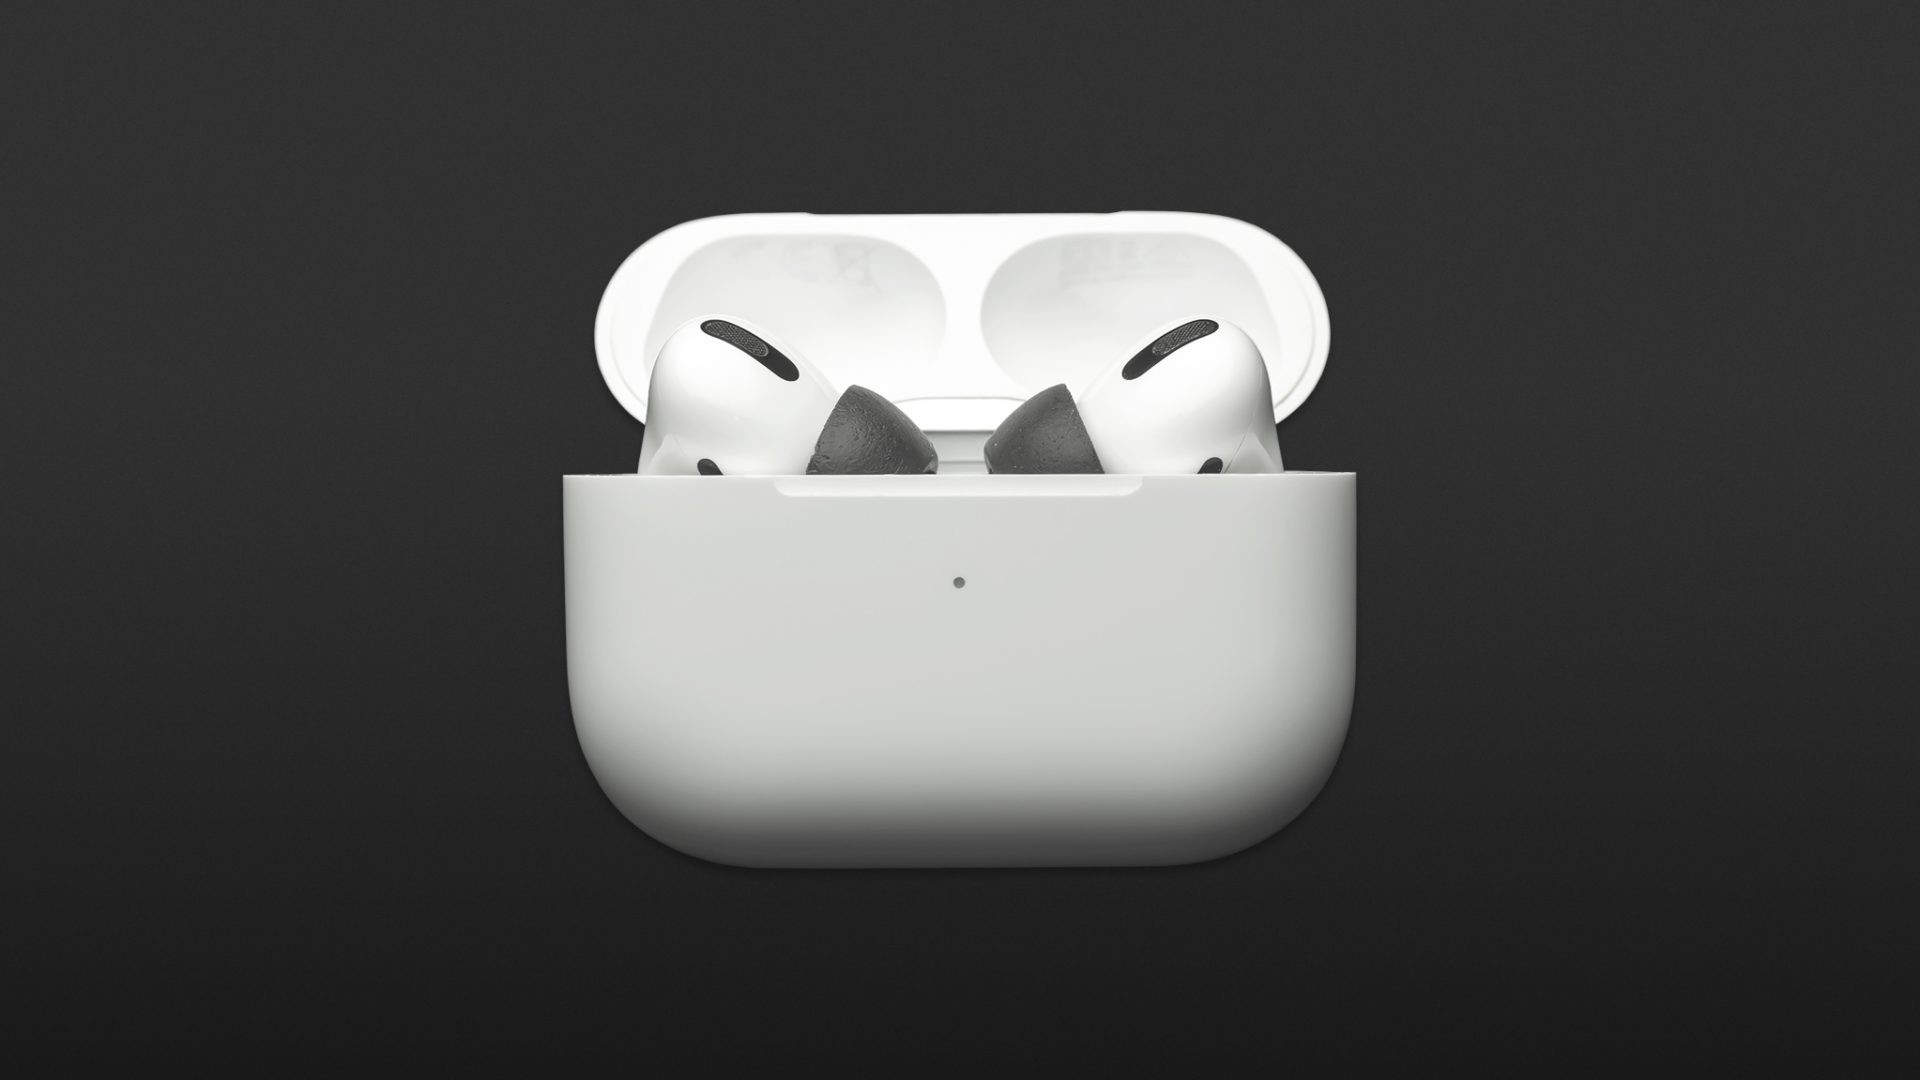 Comply Foam Tips 2.0 AirPods Pro